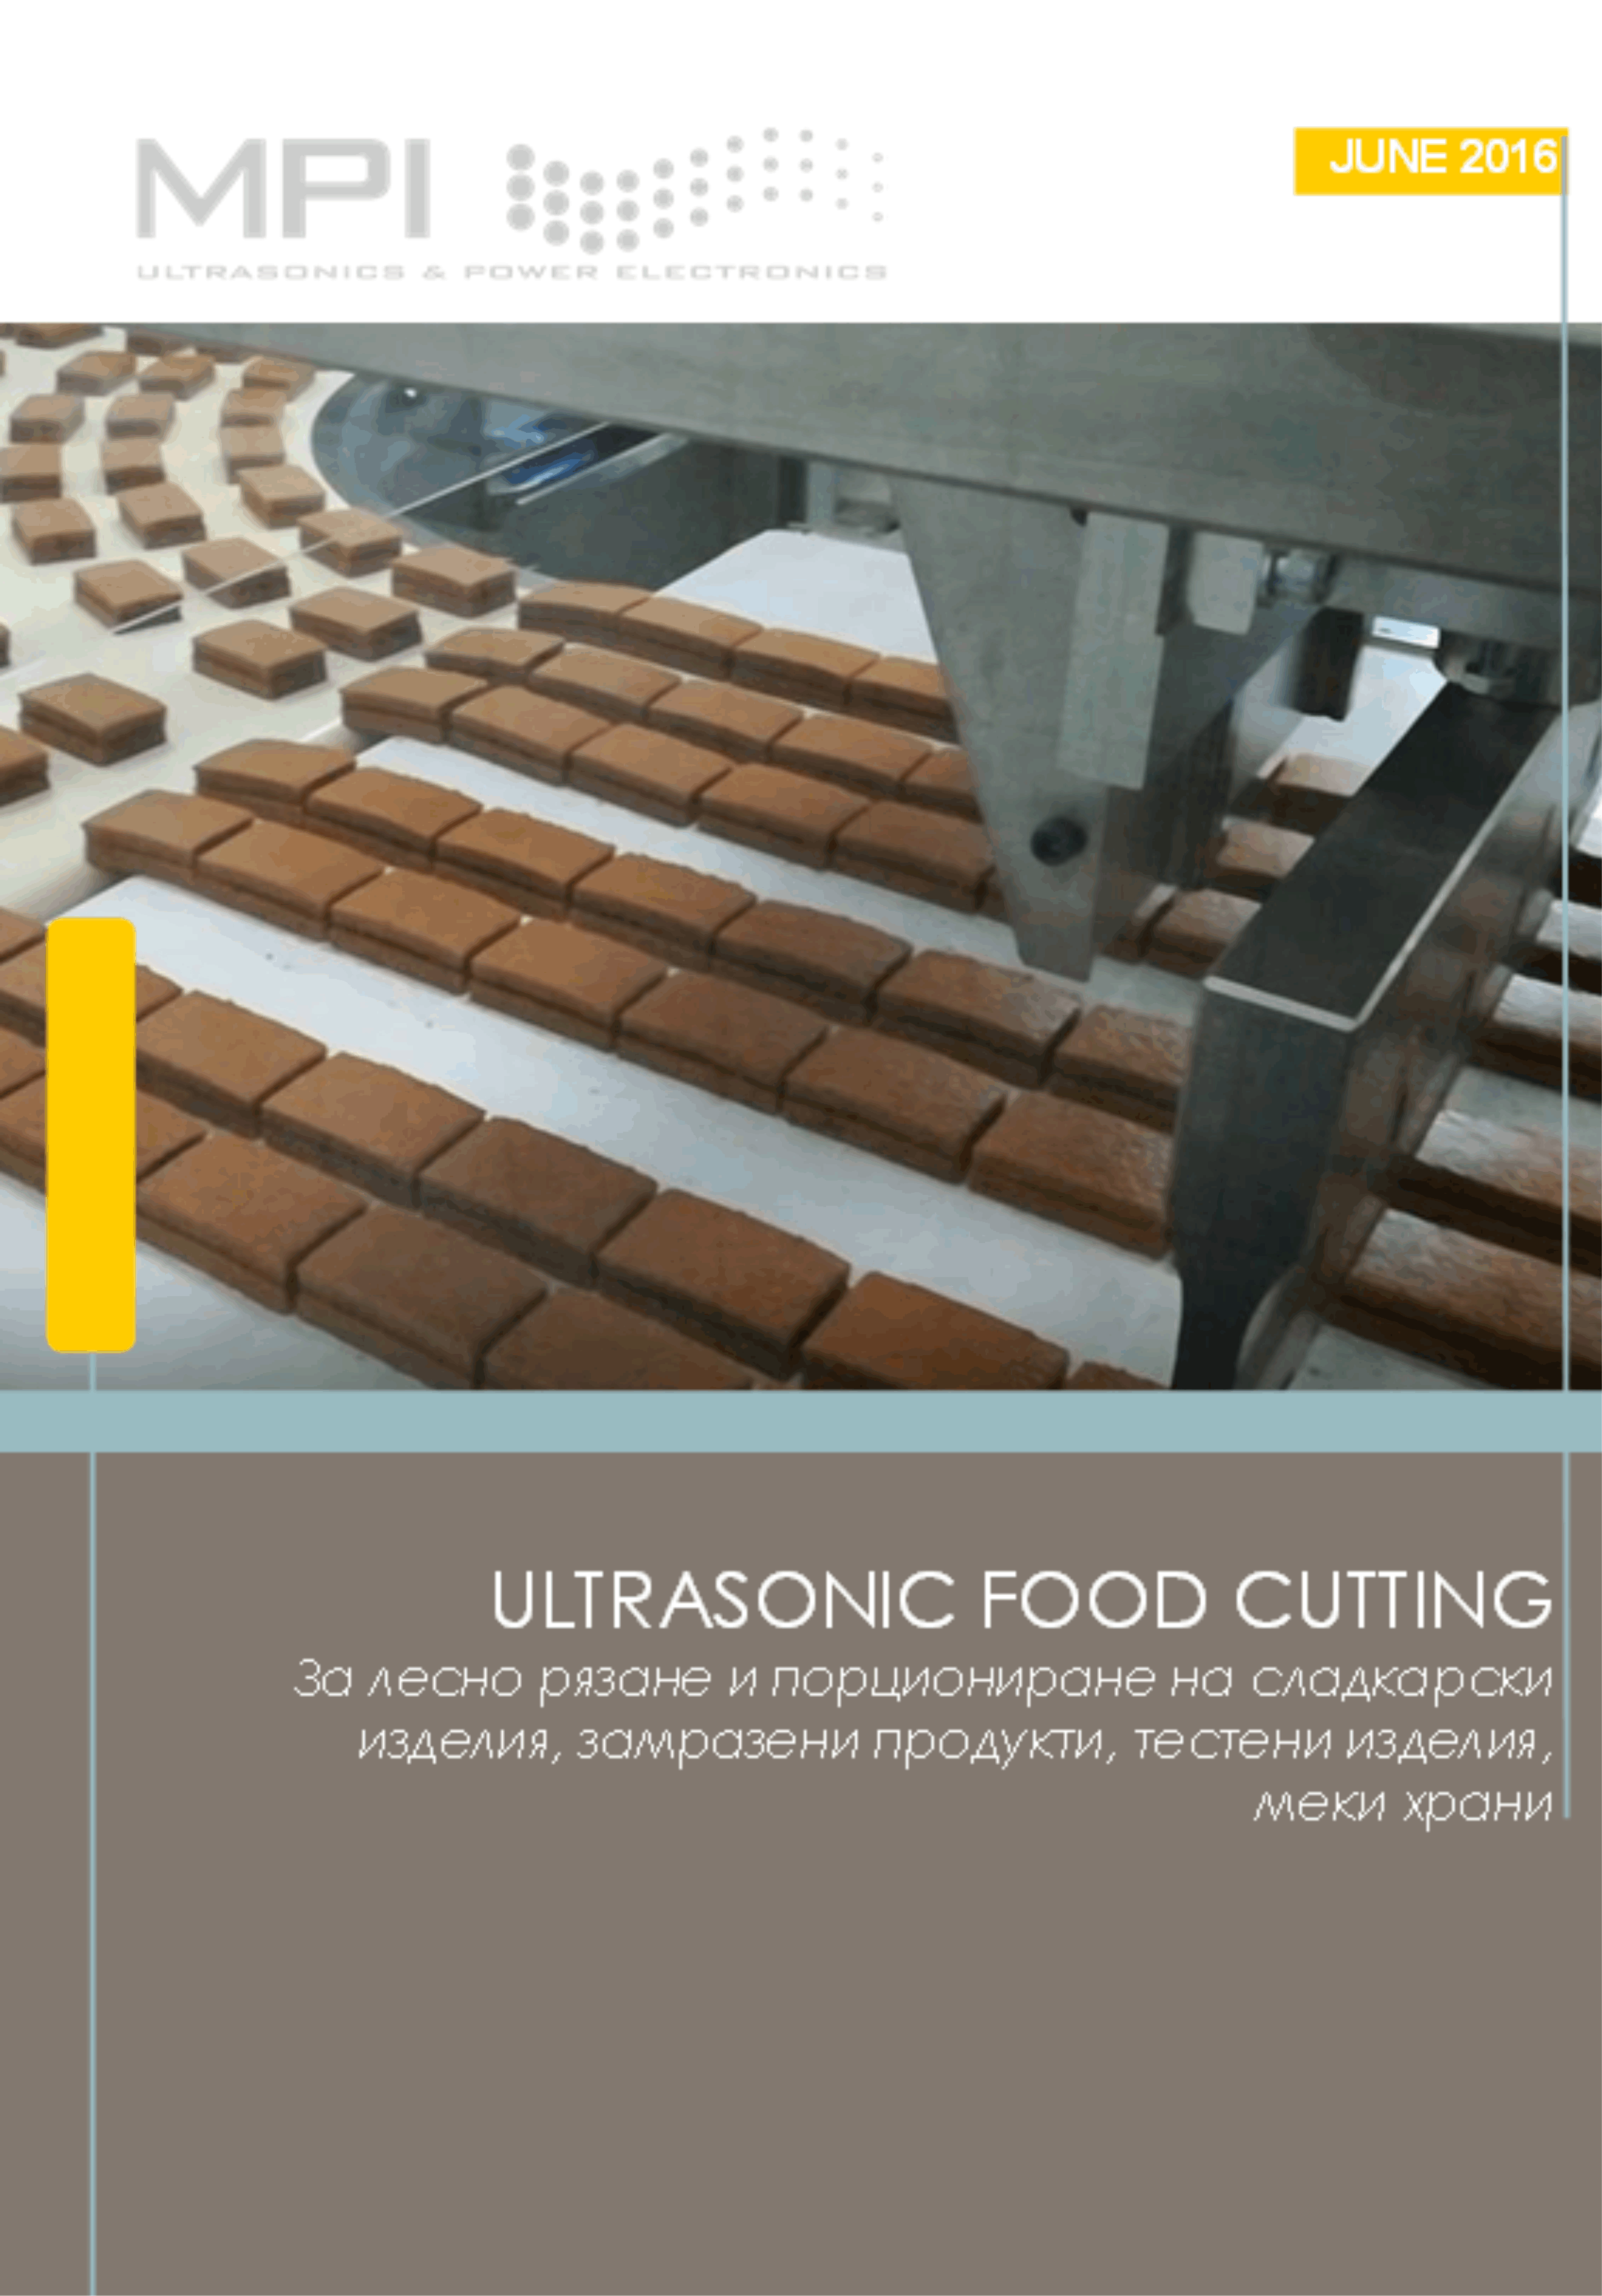 Ultrasonic Food Cutting